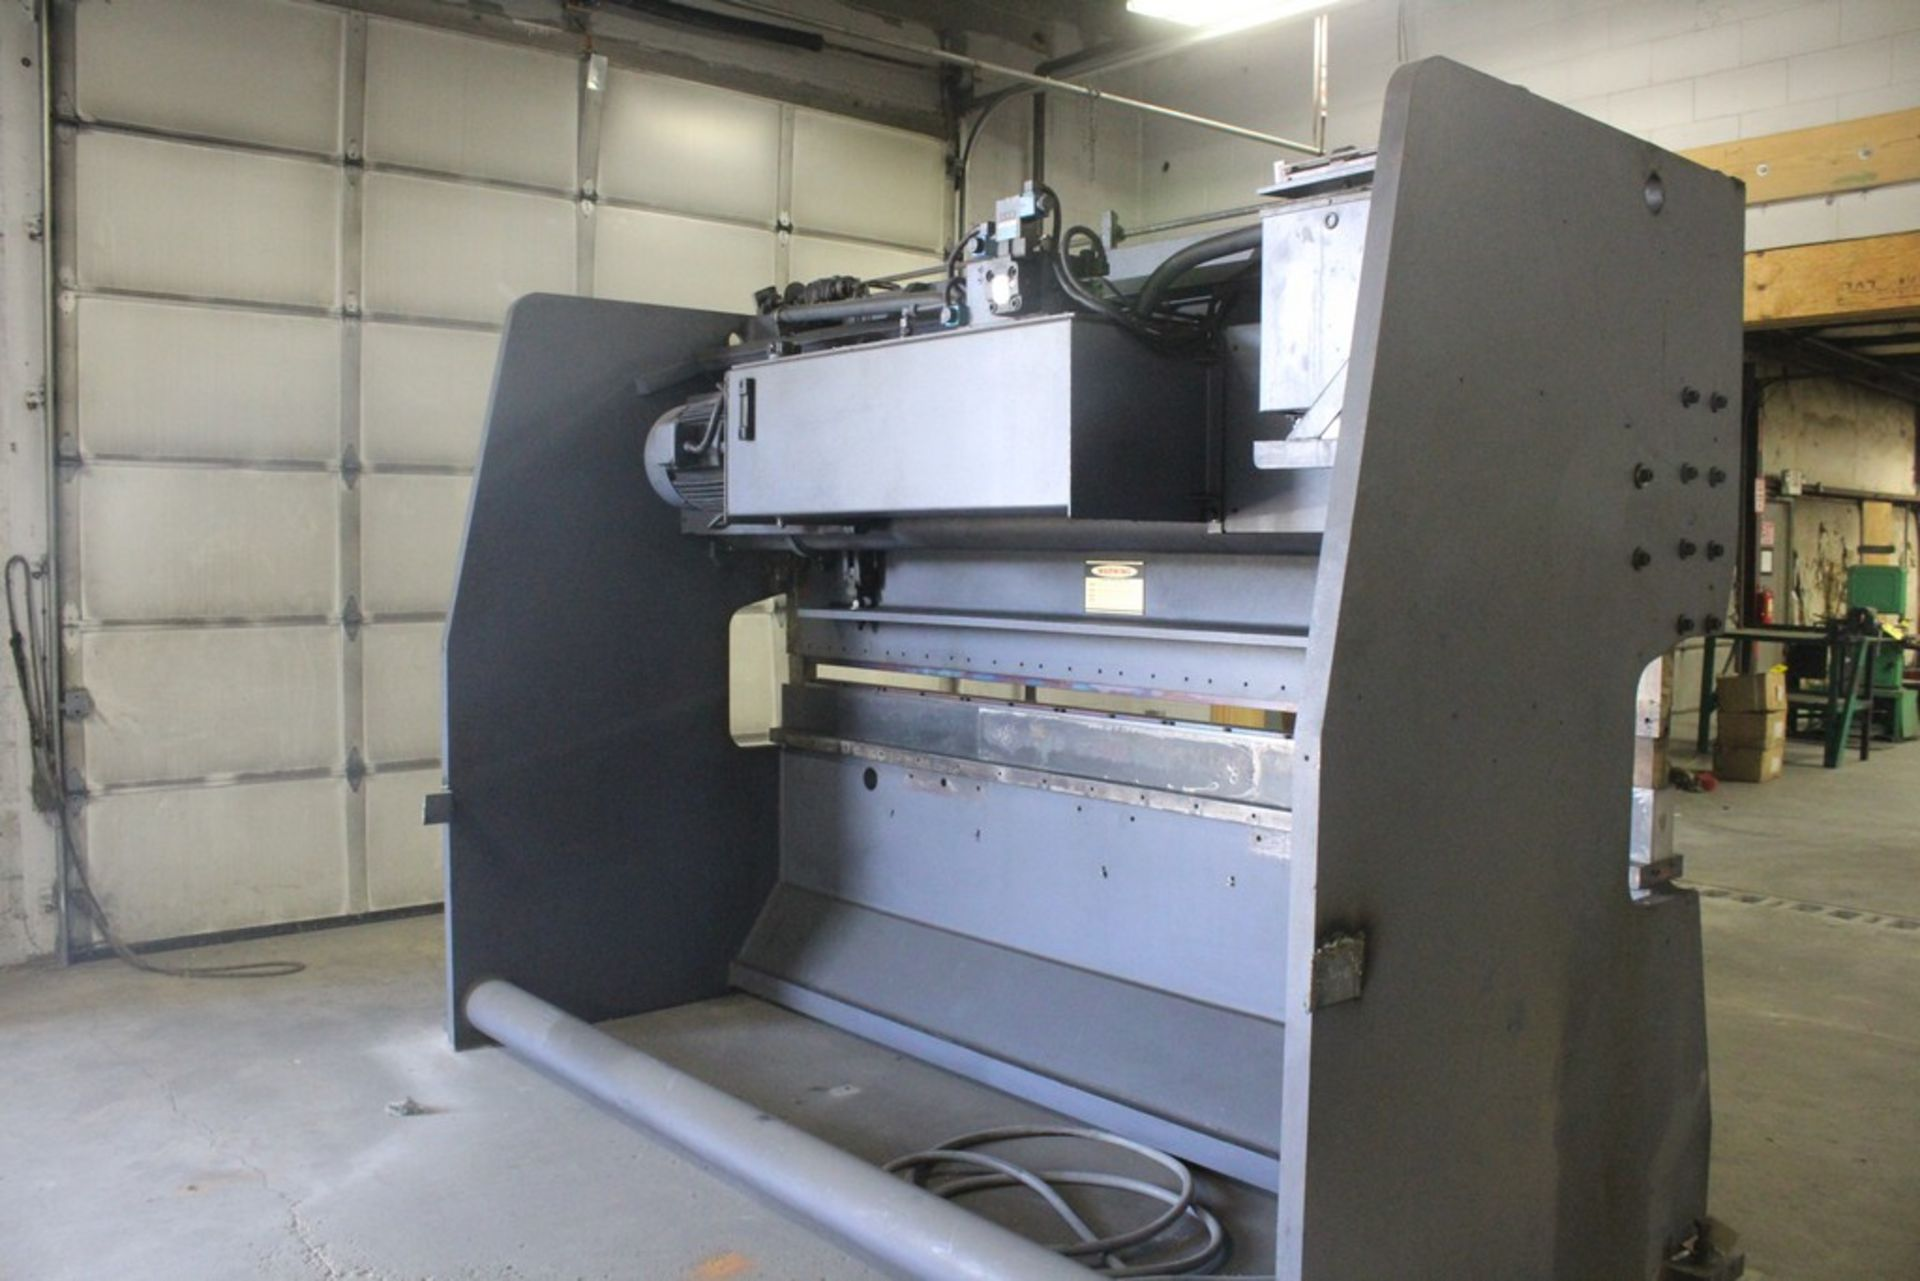 AFM Fabtek Model MPF31-165 Hydraulic Power Press Brake, Serial Number: CHPB9-90080T 165 Tons - - Image 7 of 8